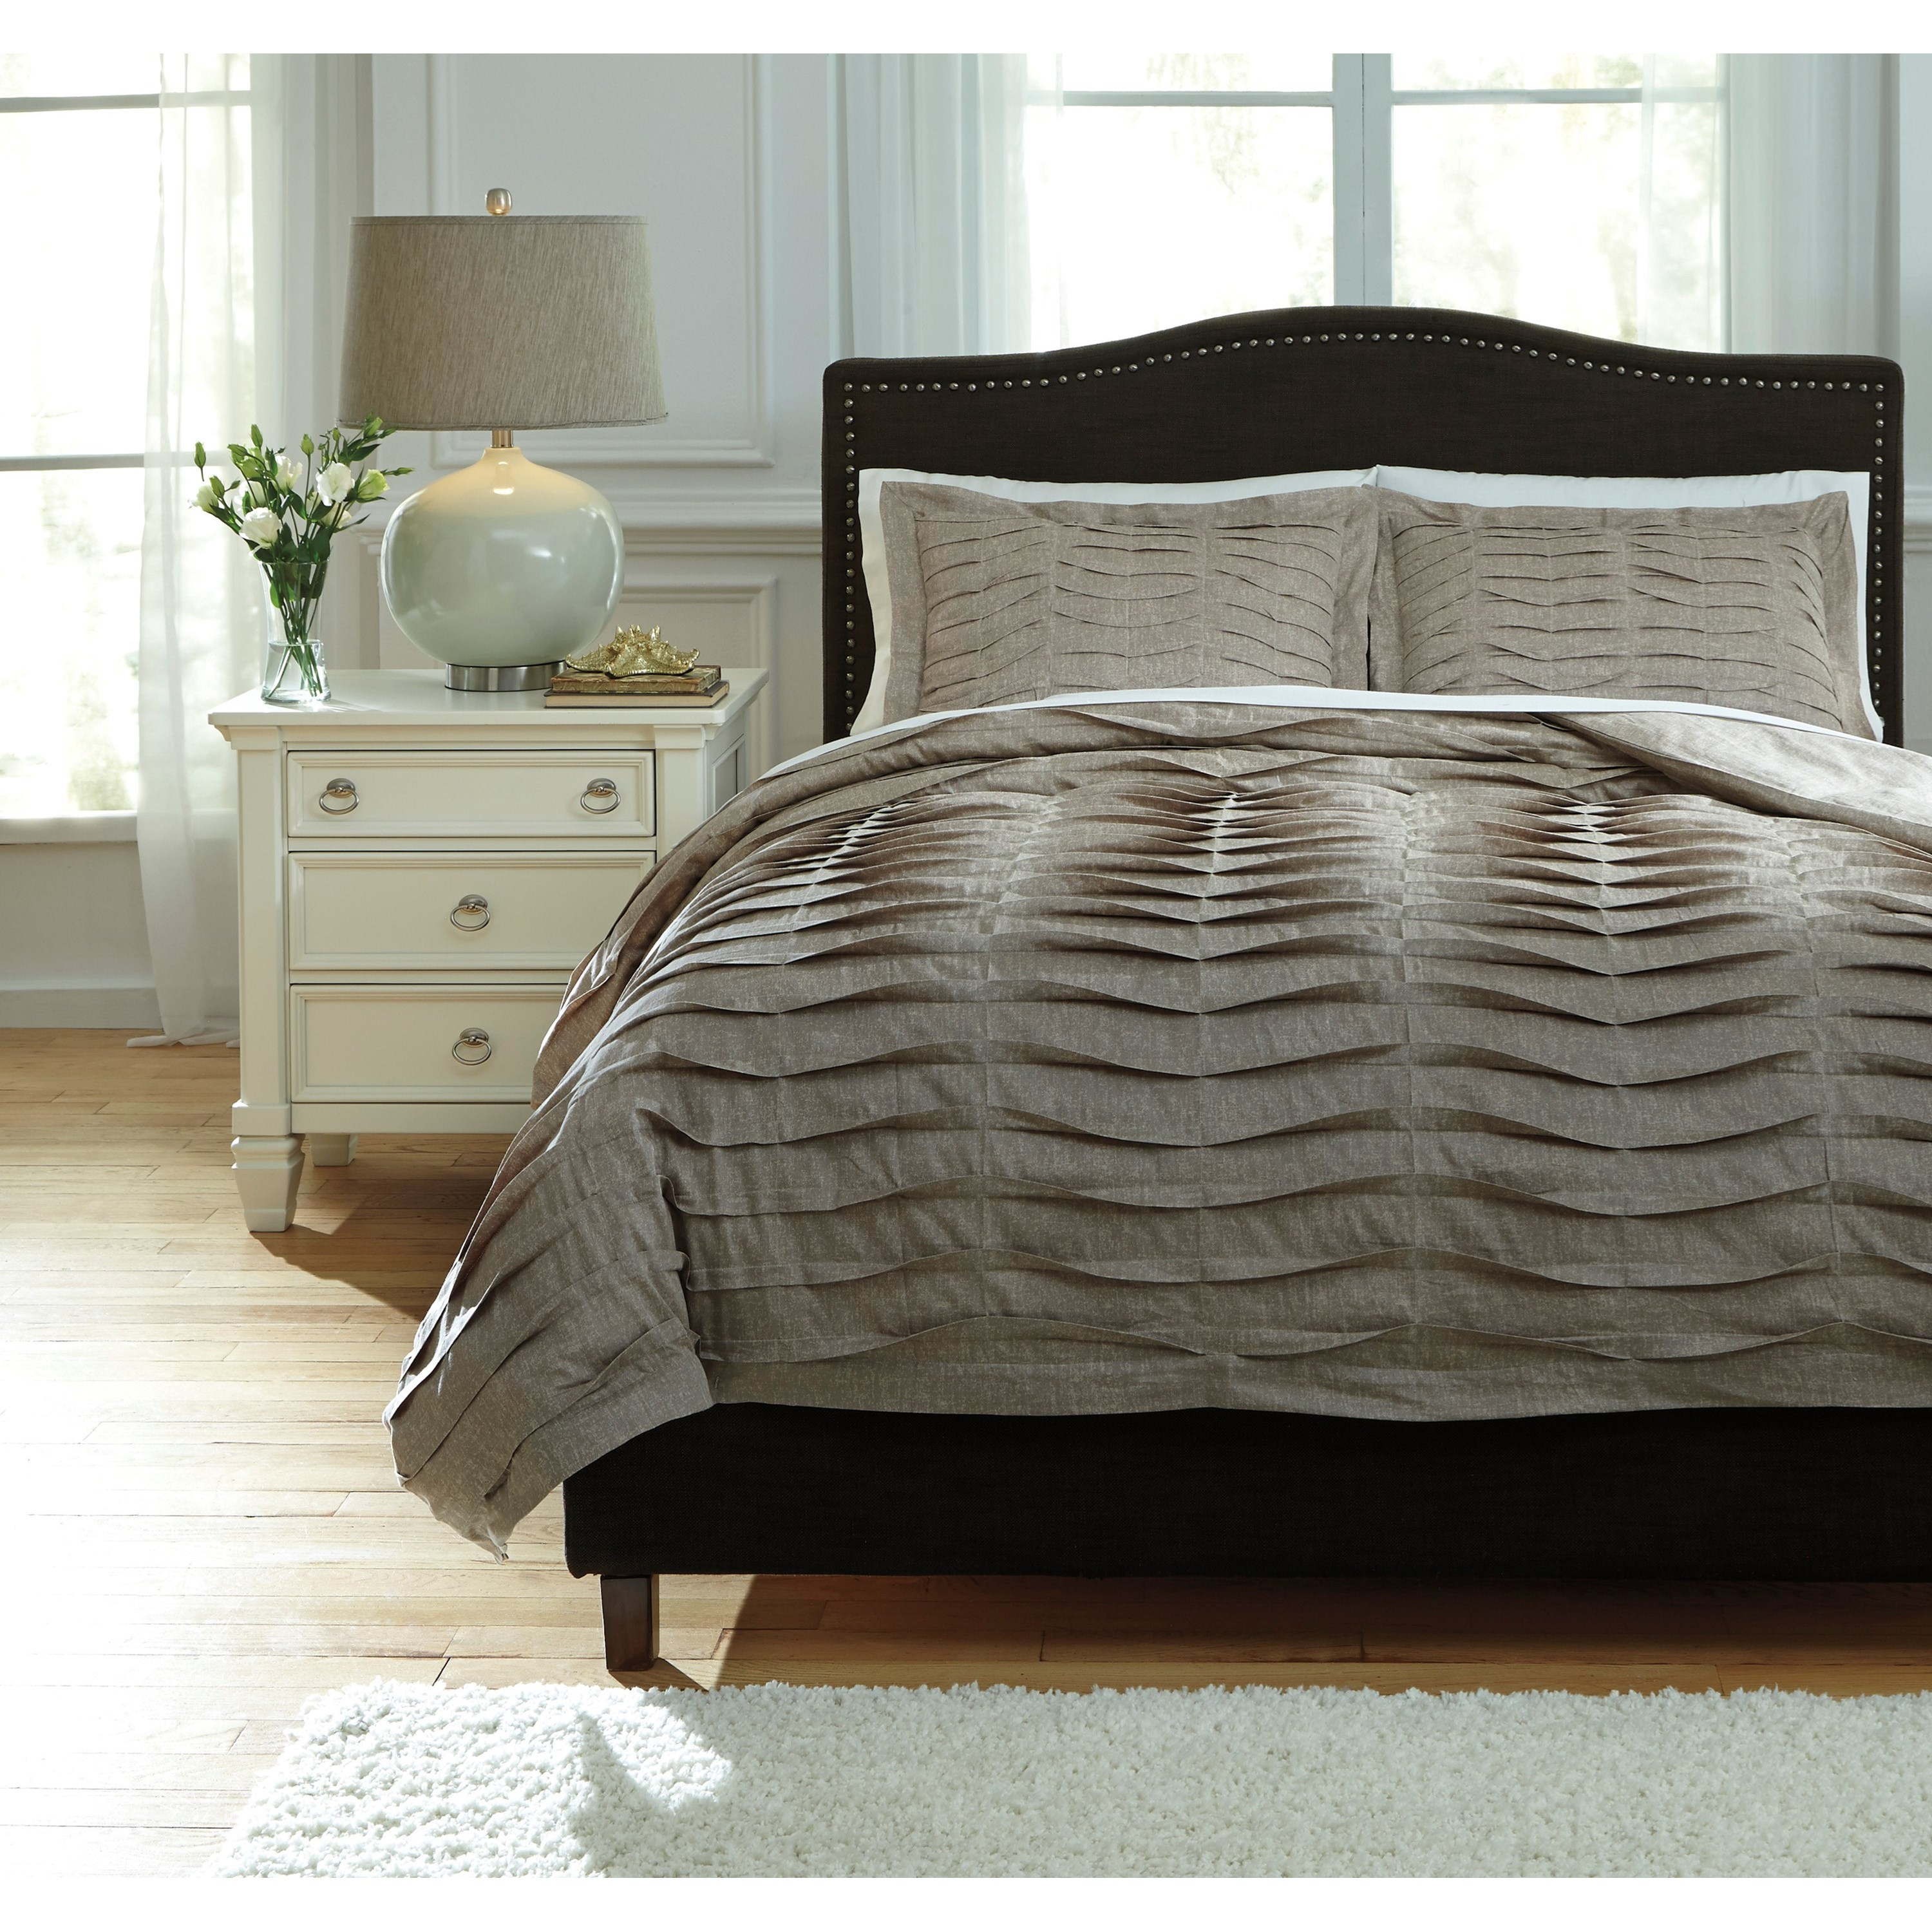 King Duvet Bedding Sets King Voltos Brown Duvet Cover Set By Signature Design By Ashley At Furniture Superstore Nm